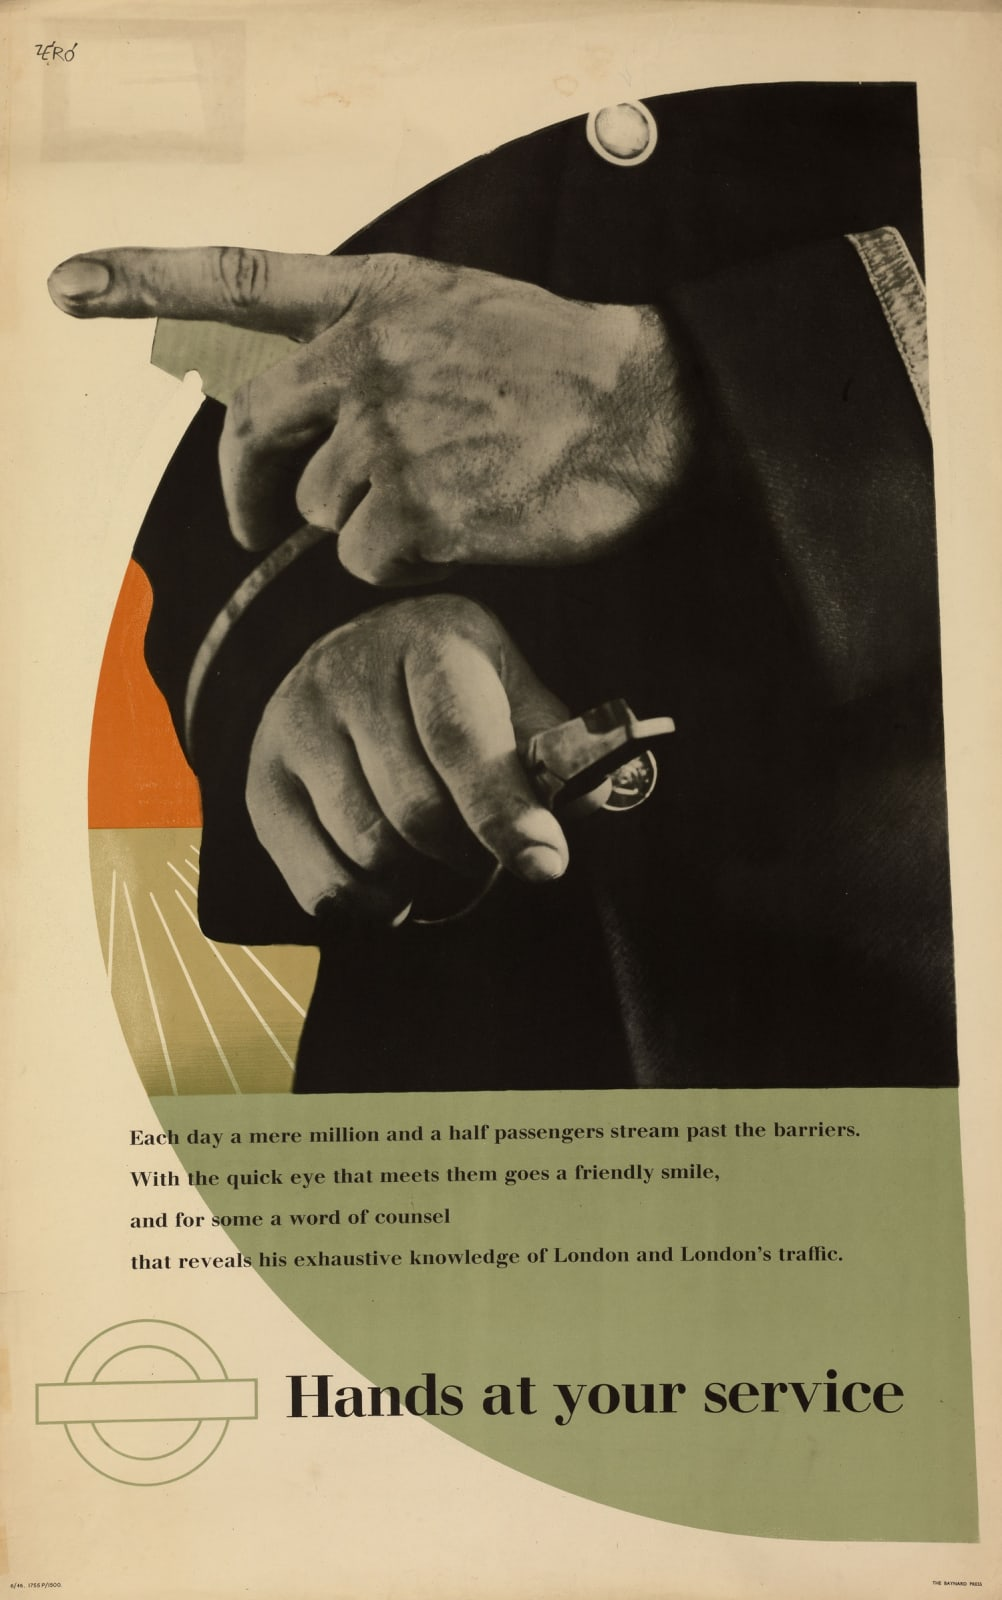 Hans Schleger (Zéró) (1898-1976) Hands at Your Service (Ticket Collector) 1946 Lithograph 101.6 x 63.5 cm Ben Uri Collection © Hans Schleger (Zéró) estate To see and discover more about this artist click here